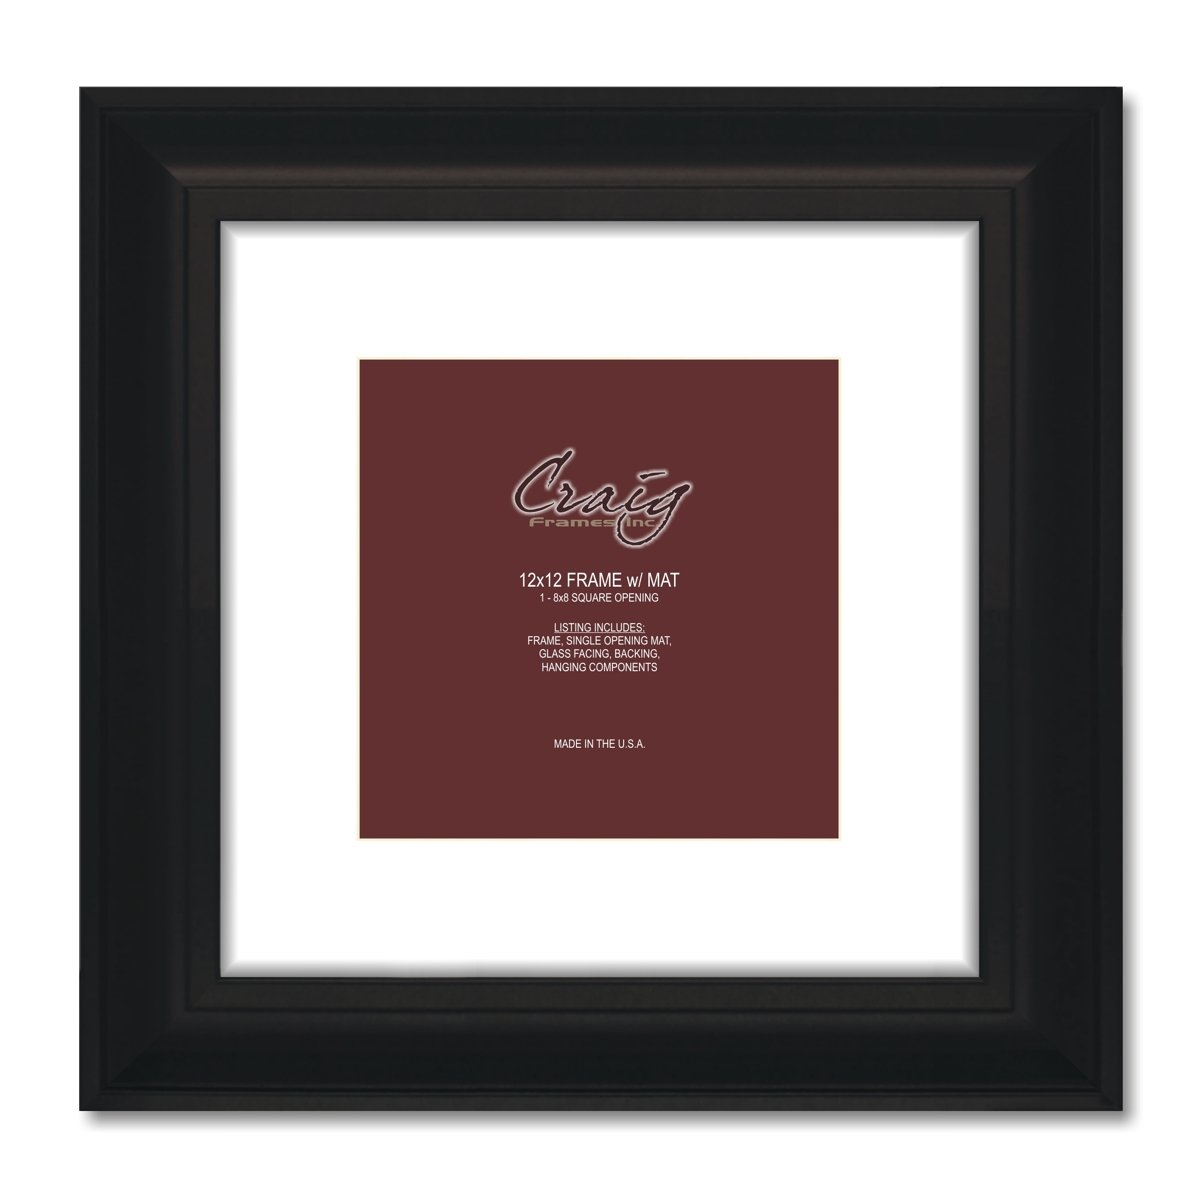 Craig Frames 16x16-Inch Picture Frame, Single White Mat with 1 12x12 Square-Inch Opening, Black